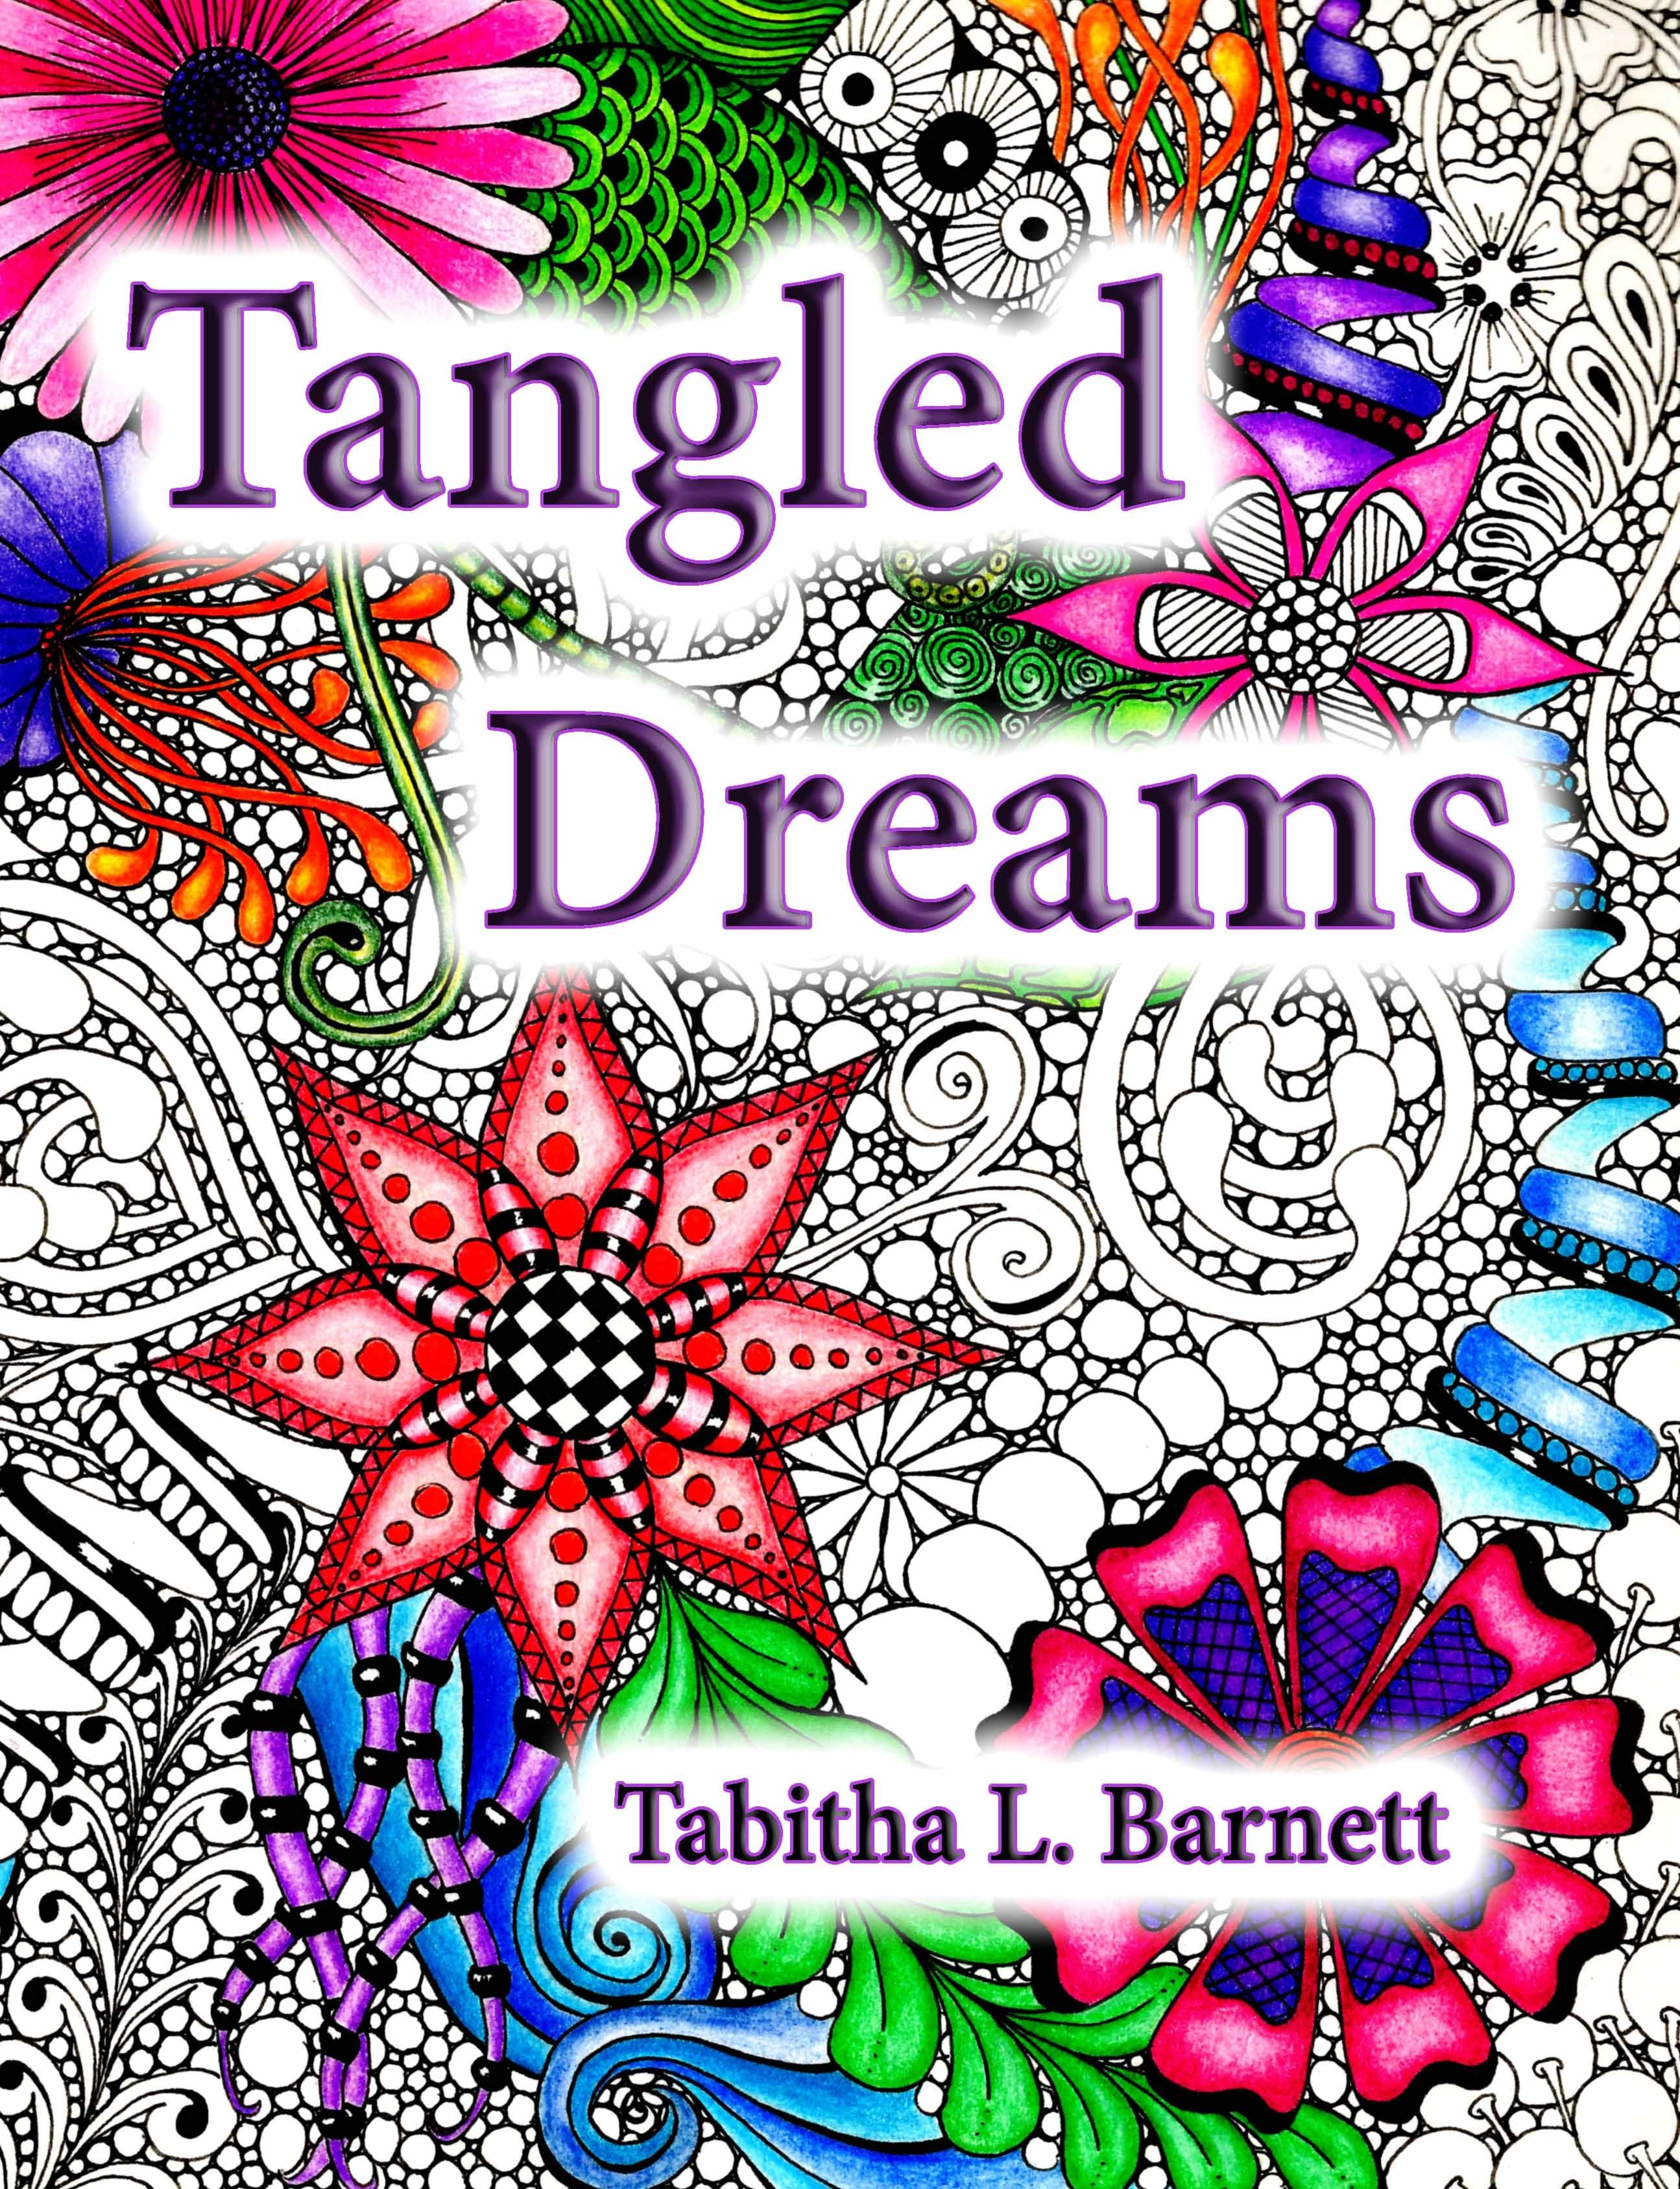 Tangled Dreams Coloring Book For Adults